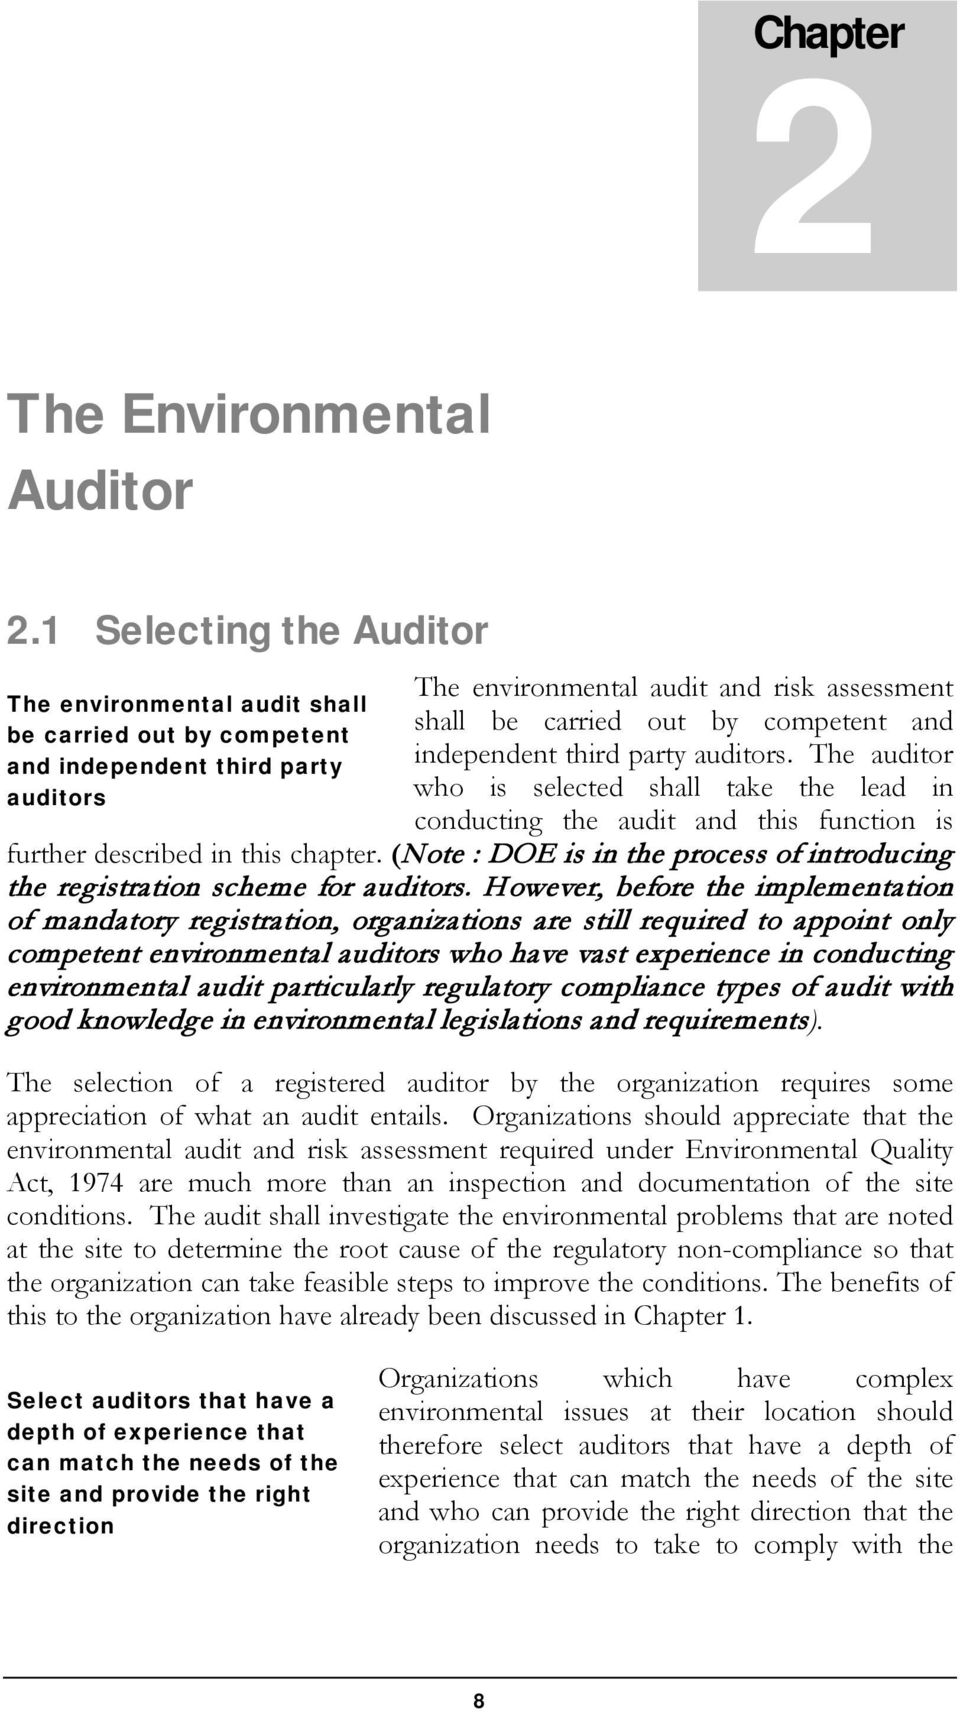 and independent third party auditors. The auditor who is selected shall take the lead in conducting the audit and this function is further described in this chapter.